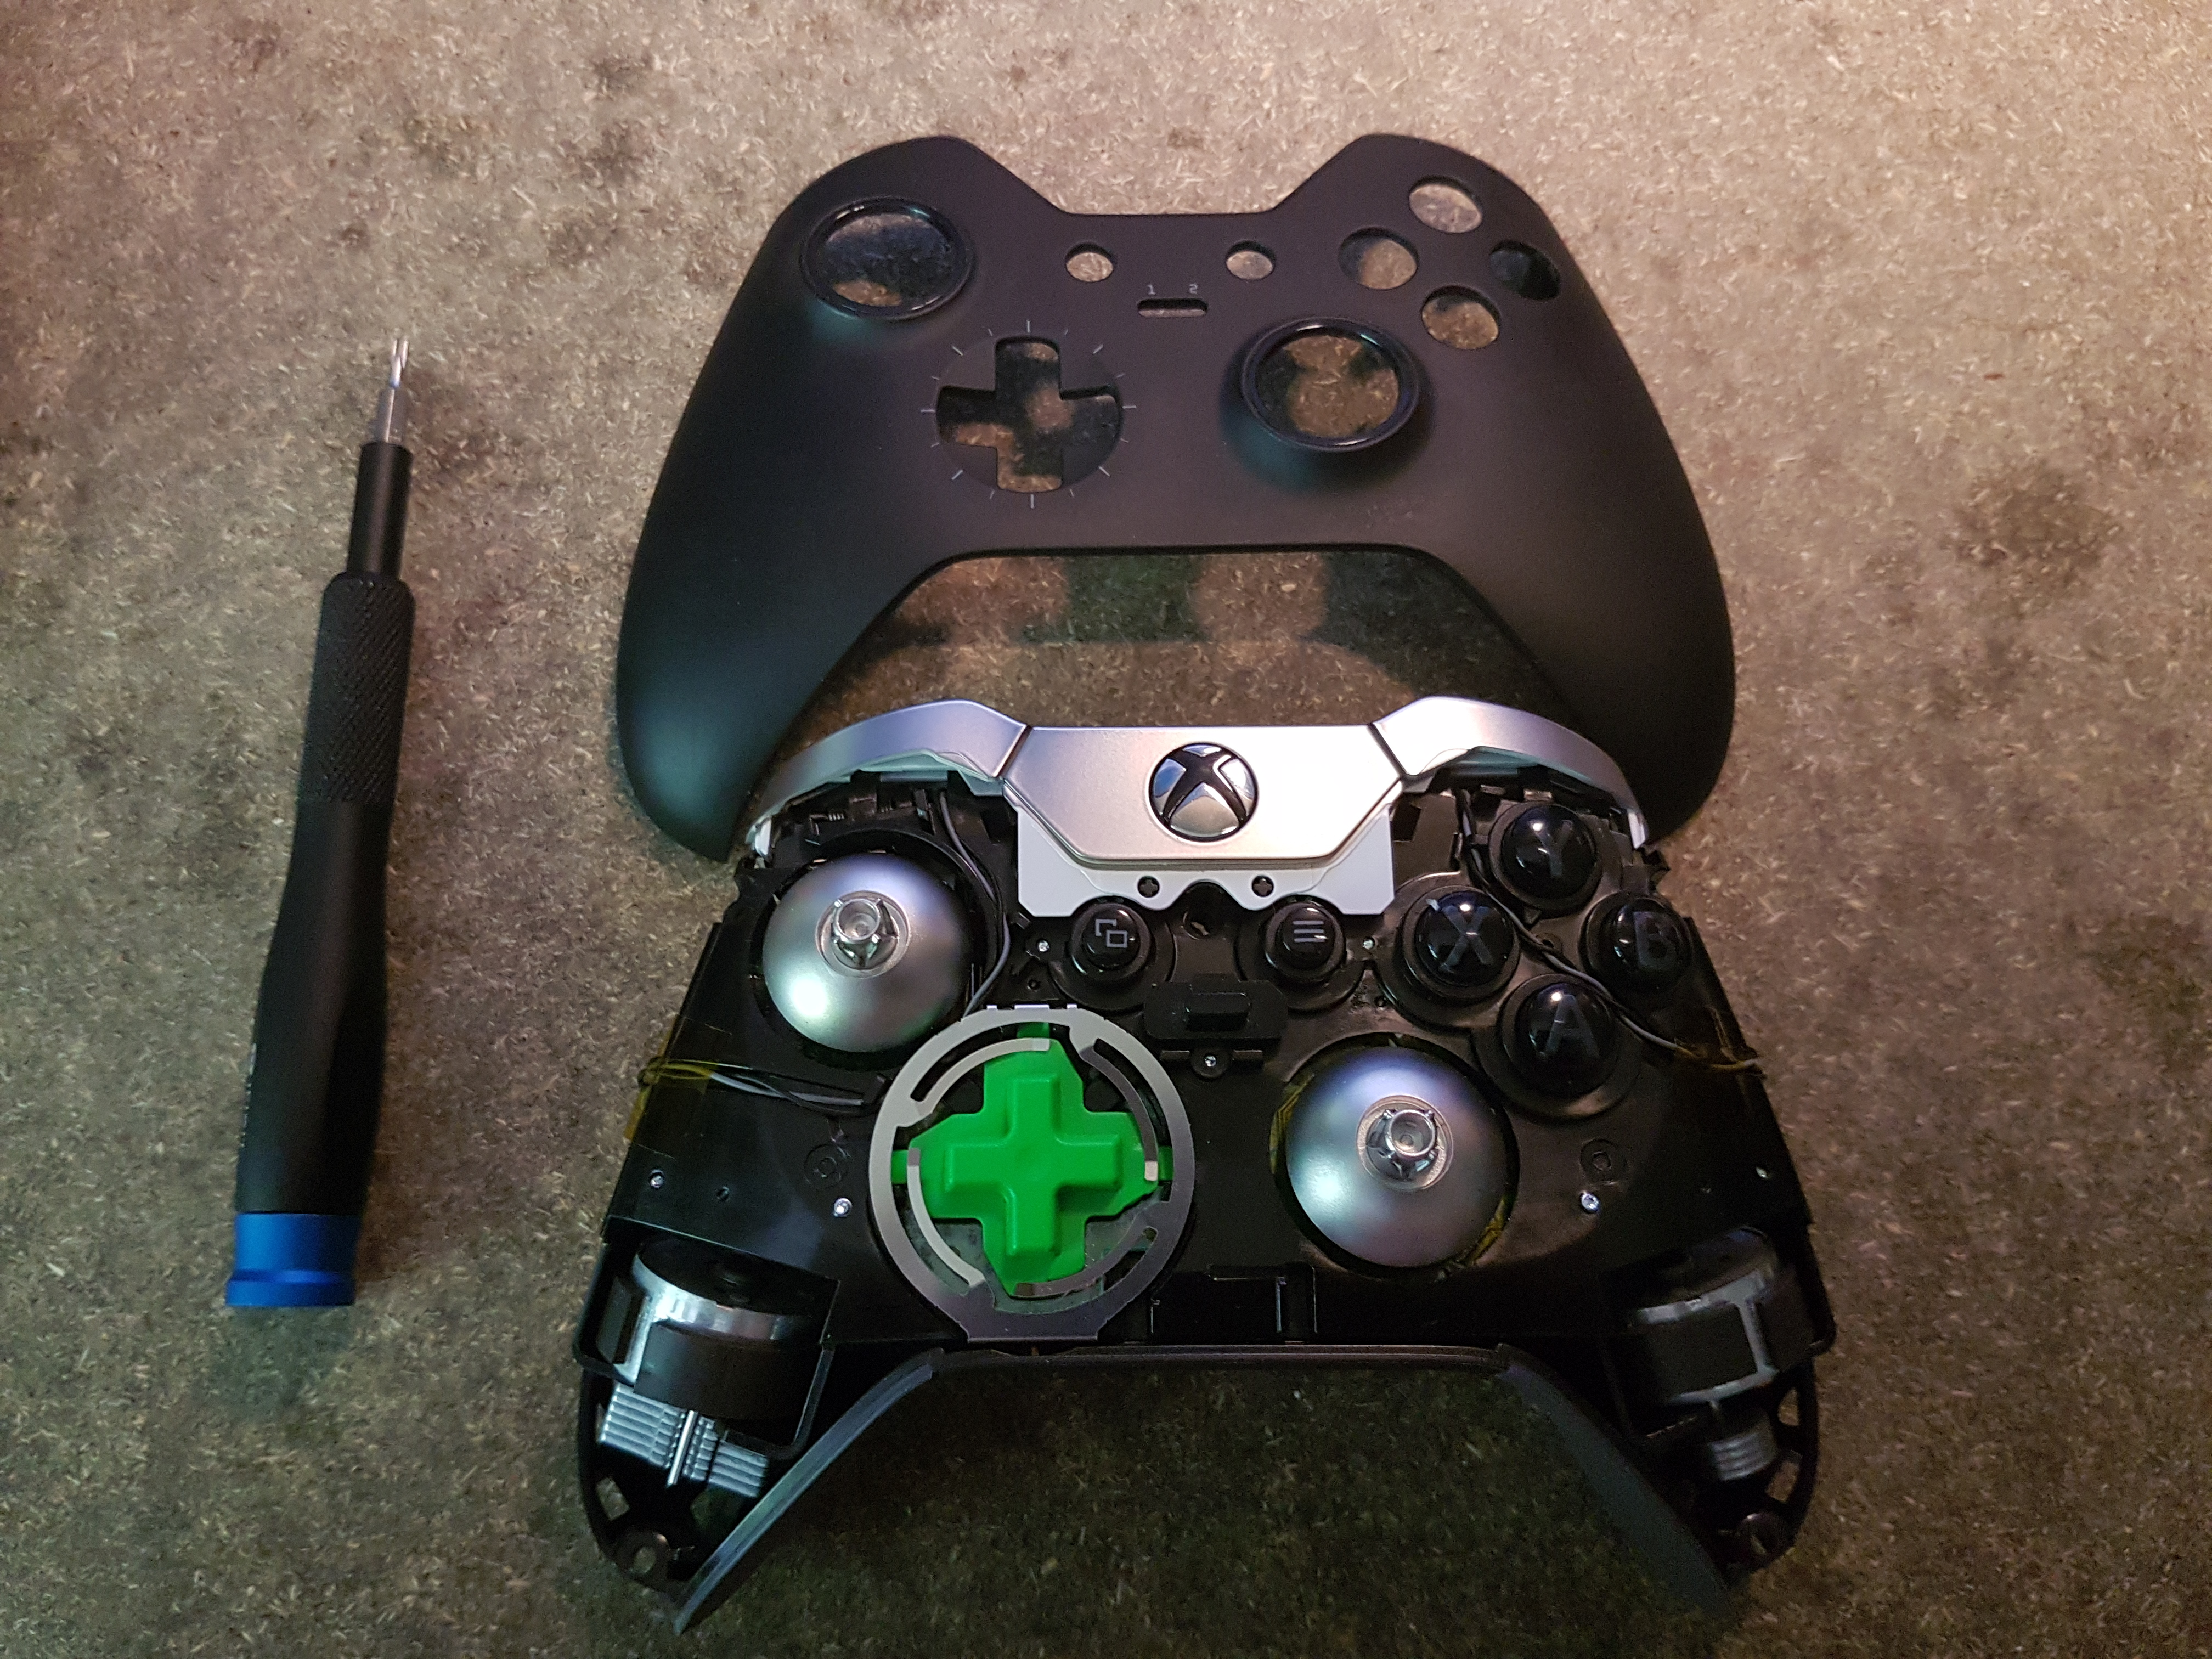 Fixing Xbox One Elite controller sticky buttons